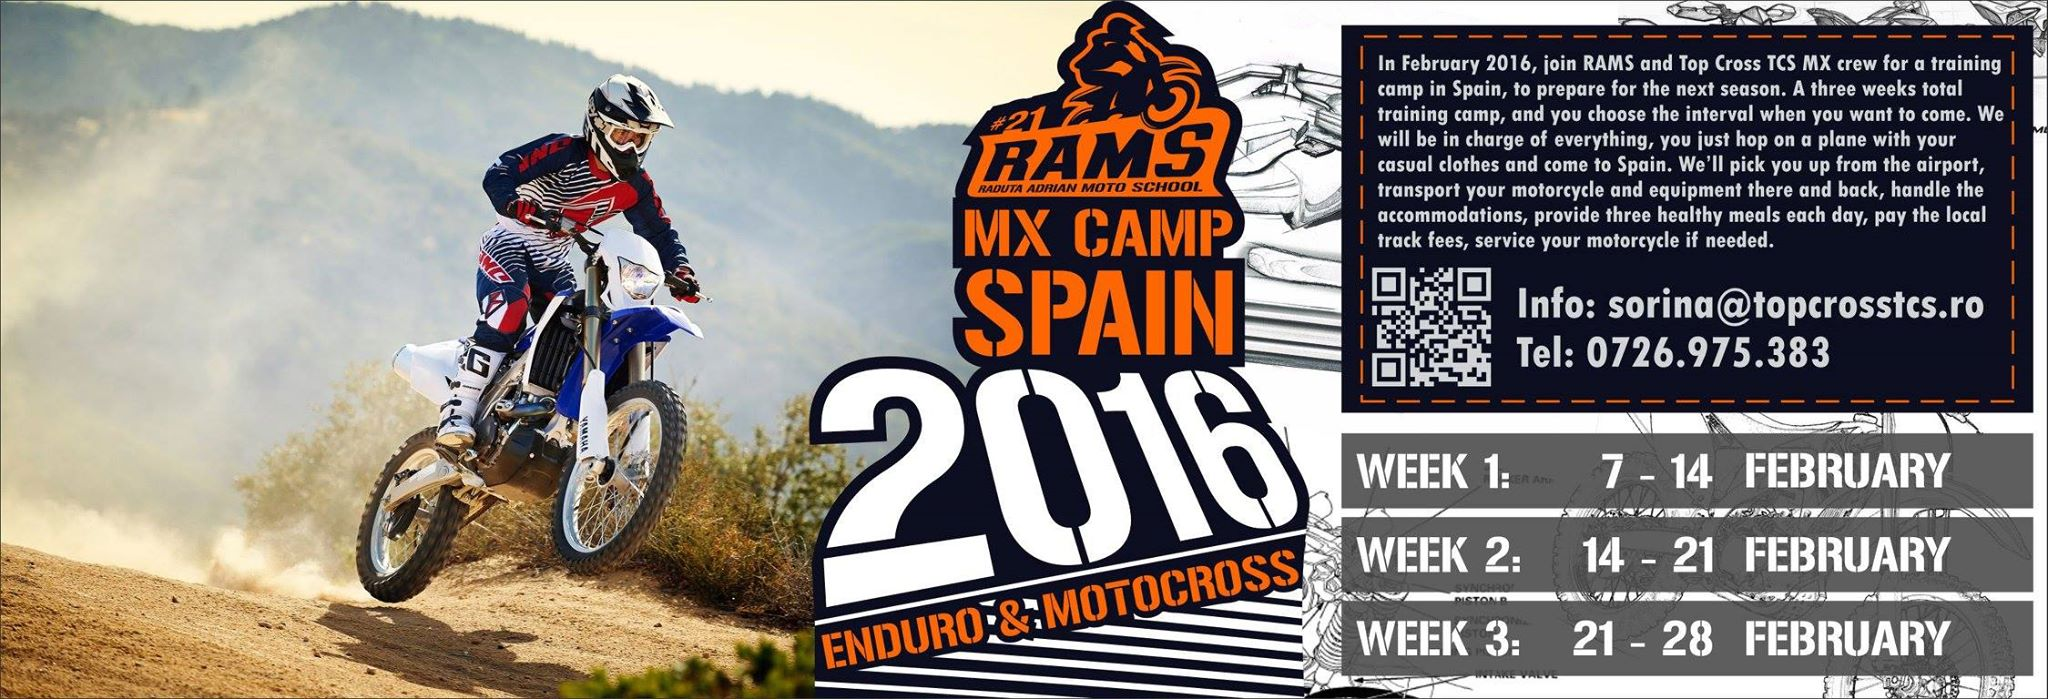 RAMS MX Camp Spain 2016